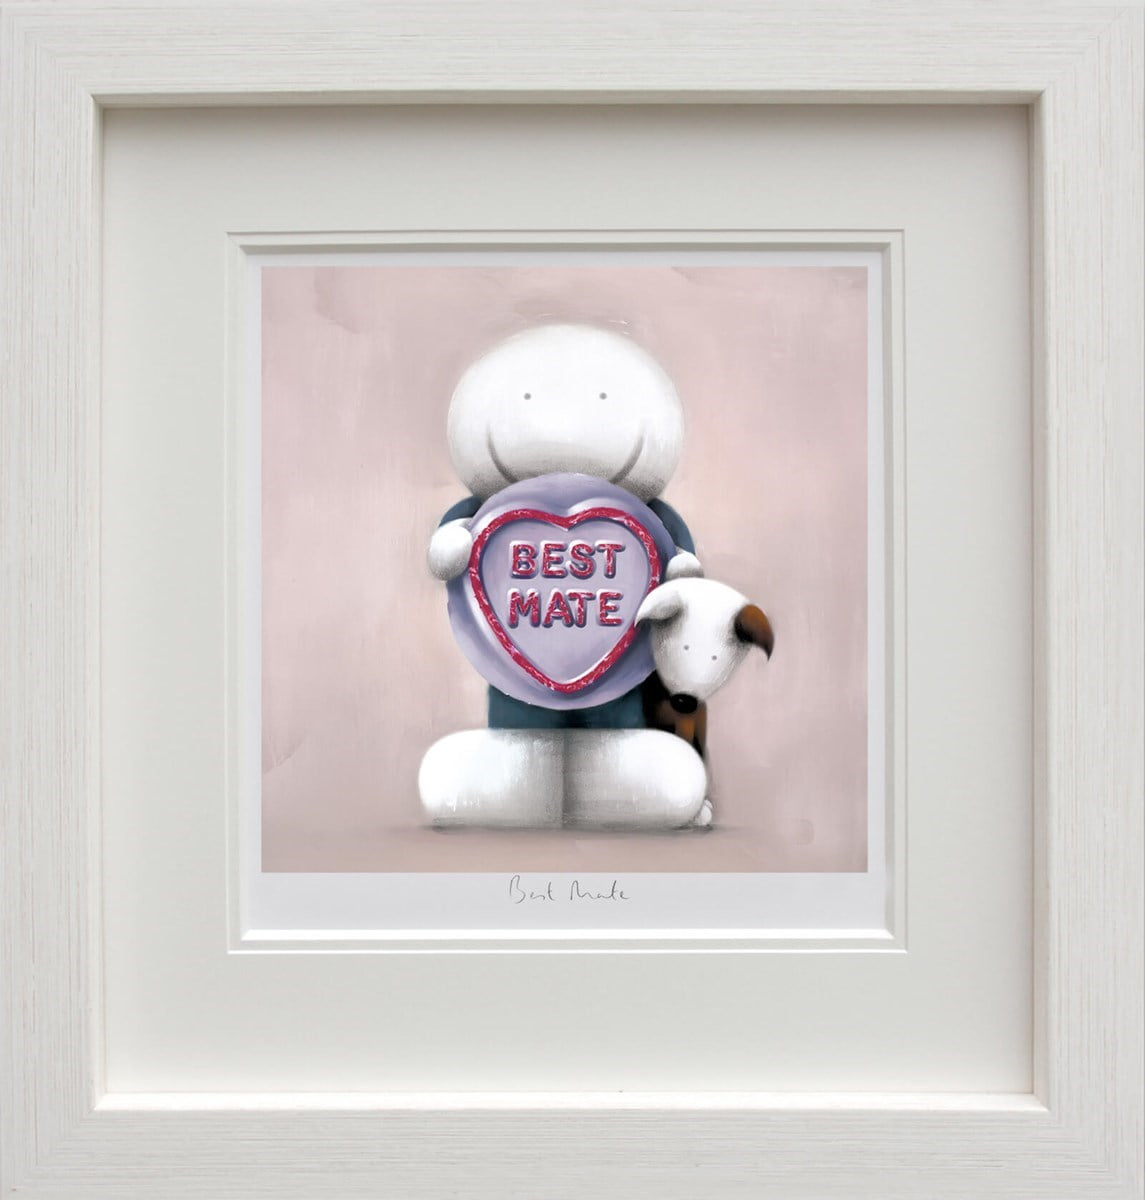 Best Mate ~ Doug Hyde